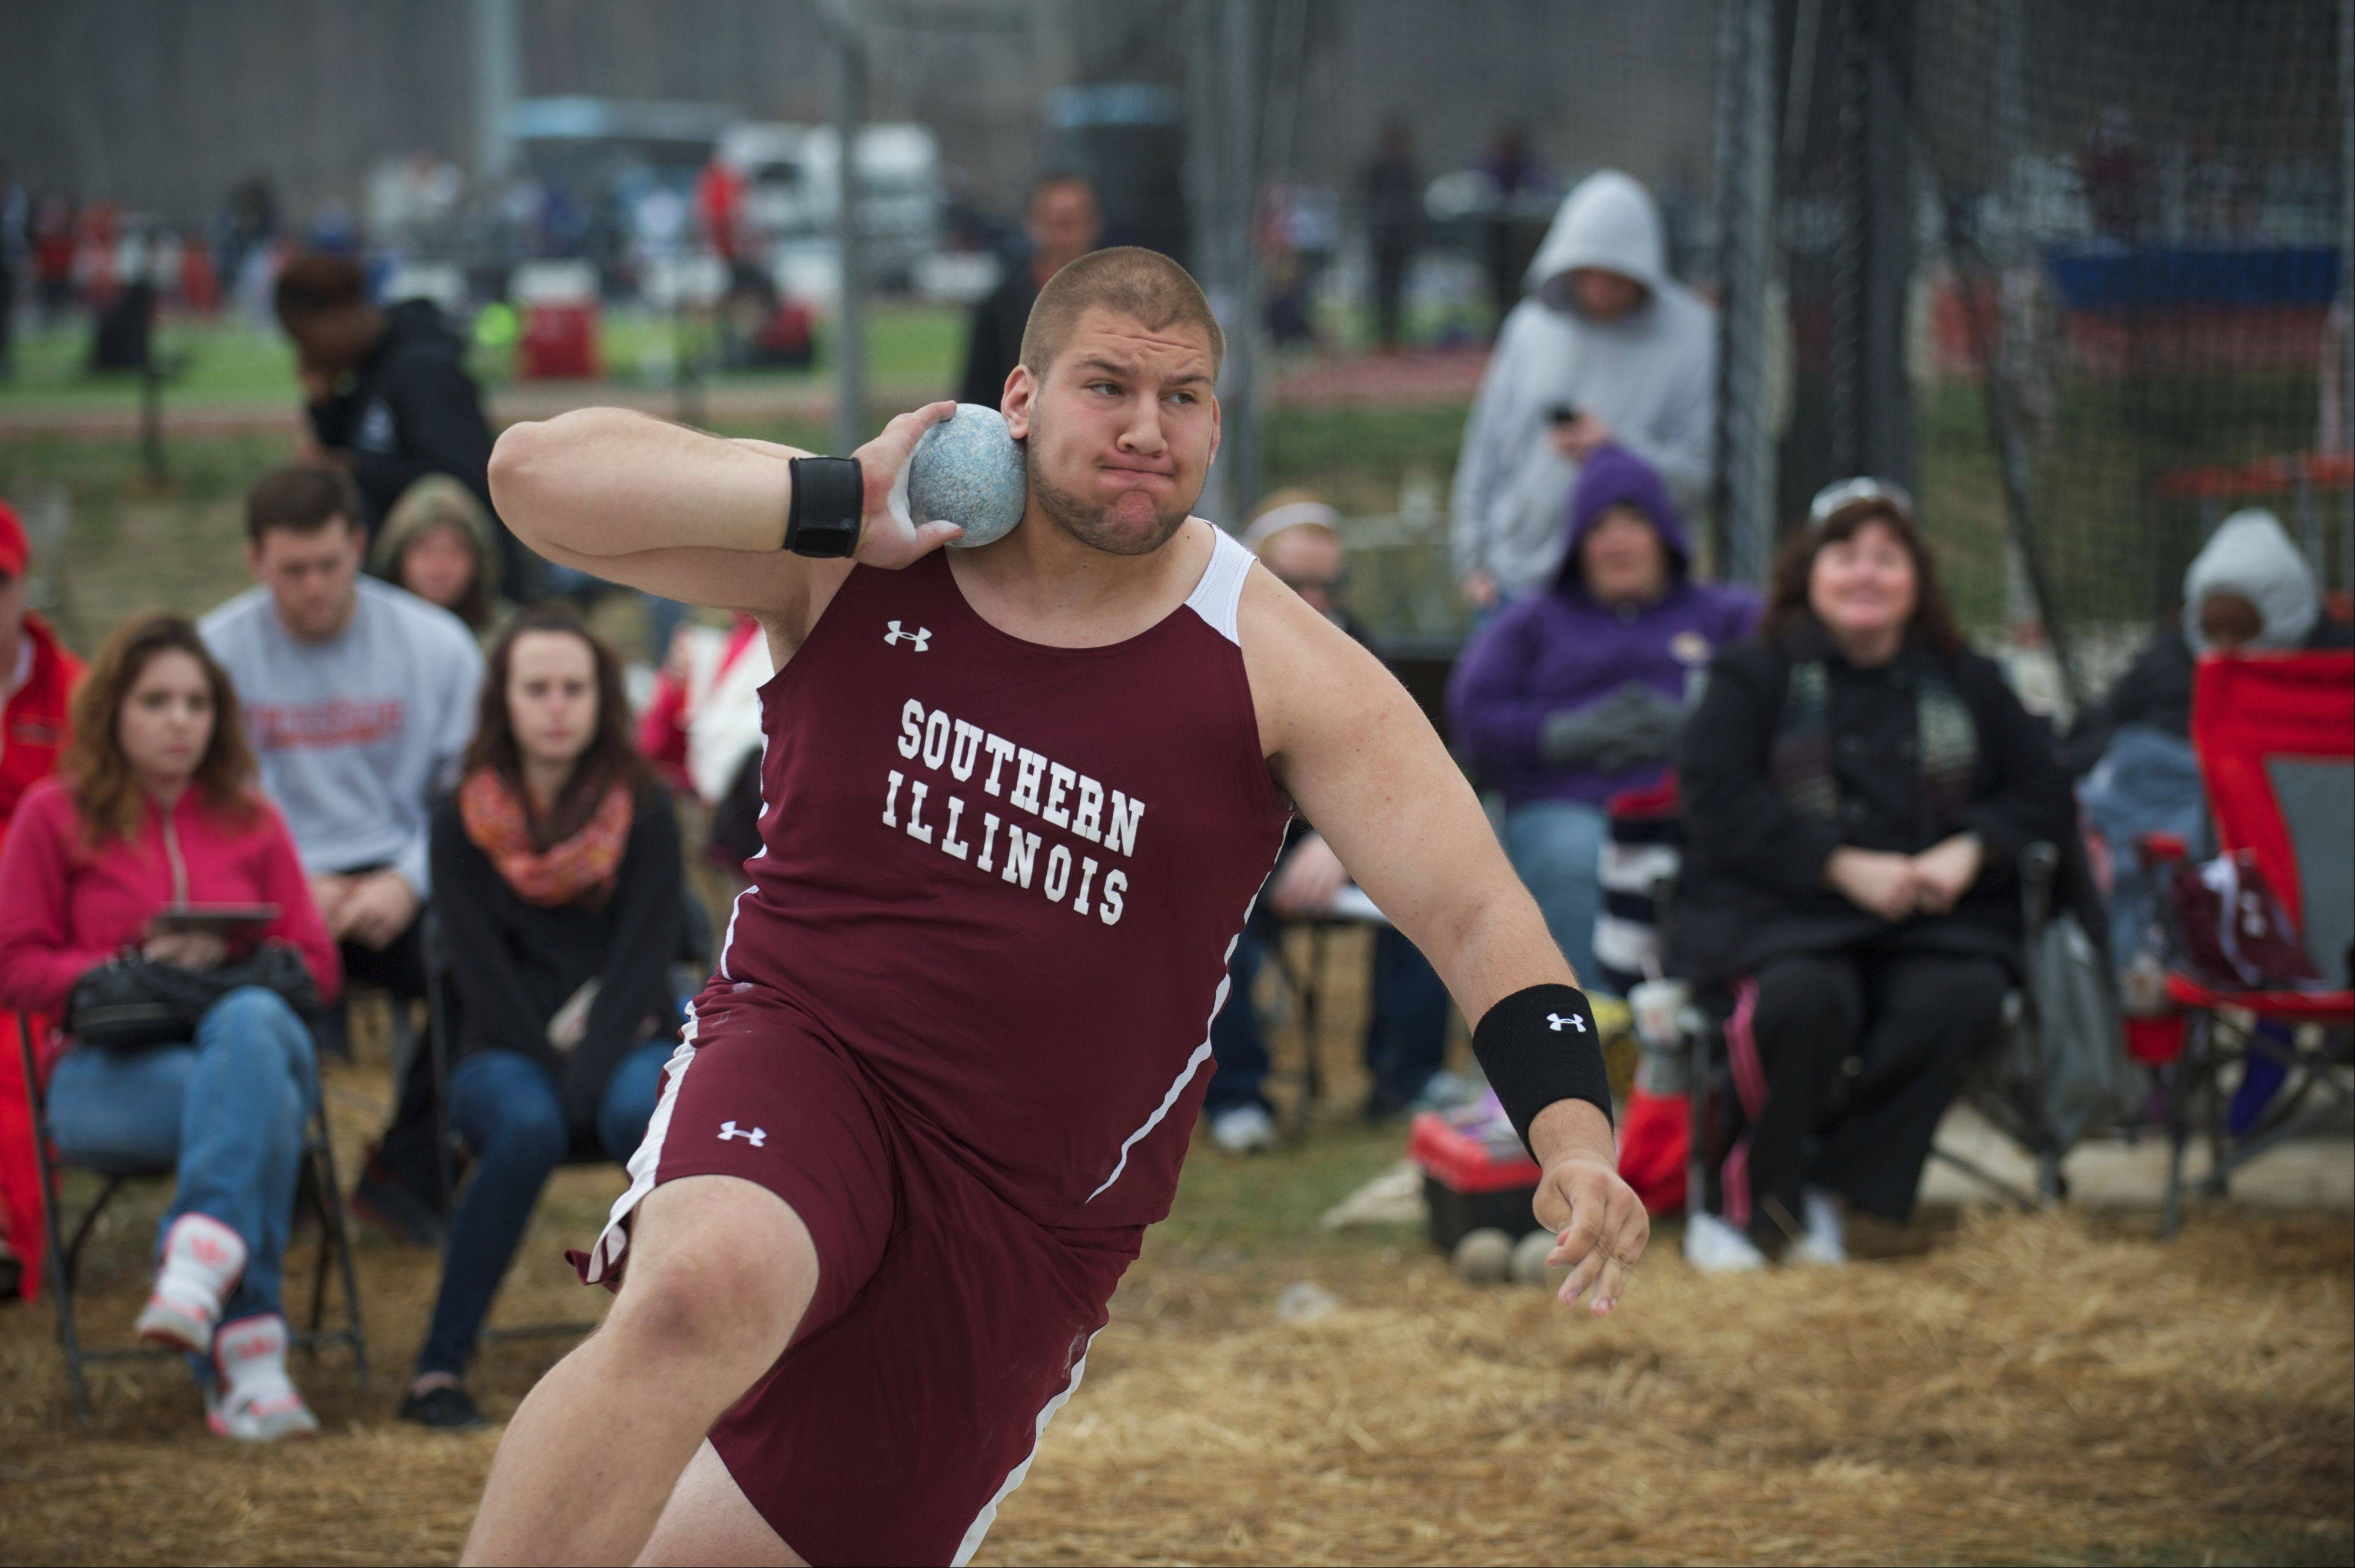 Cary-Grove graduate Josh Freeman, now a sophomore thrower at Southern Illinois, had a productive offseason throwing at several top meets.